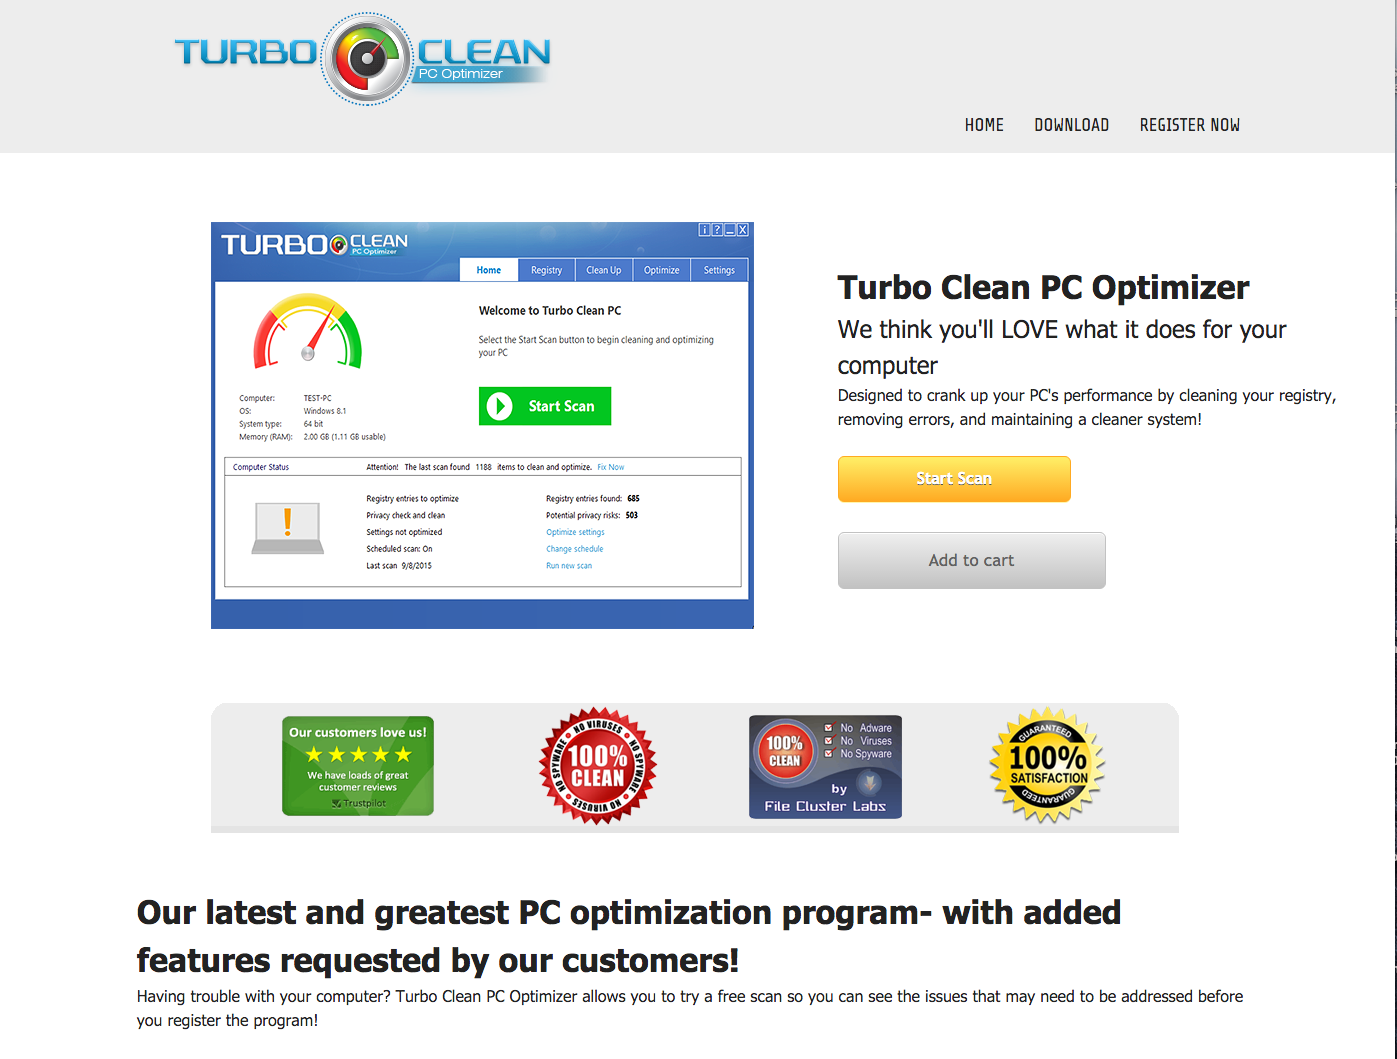 Turbo Clean PC Free Download Offer-Virus! - Truth or Fiction?